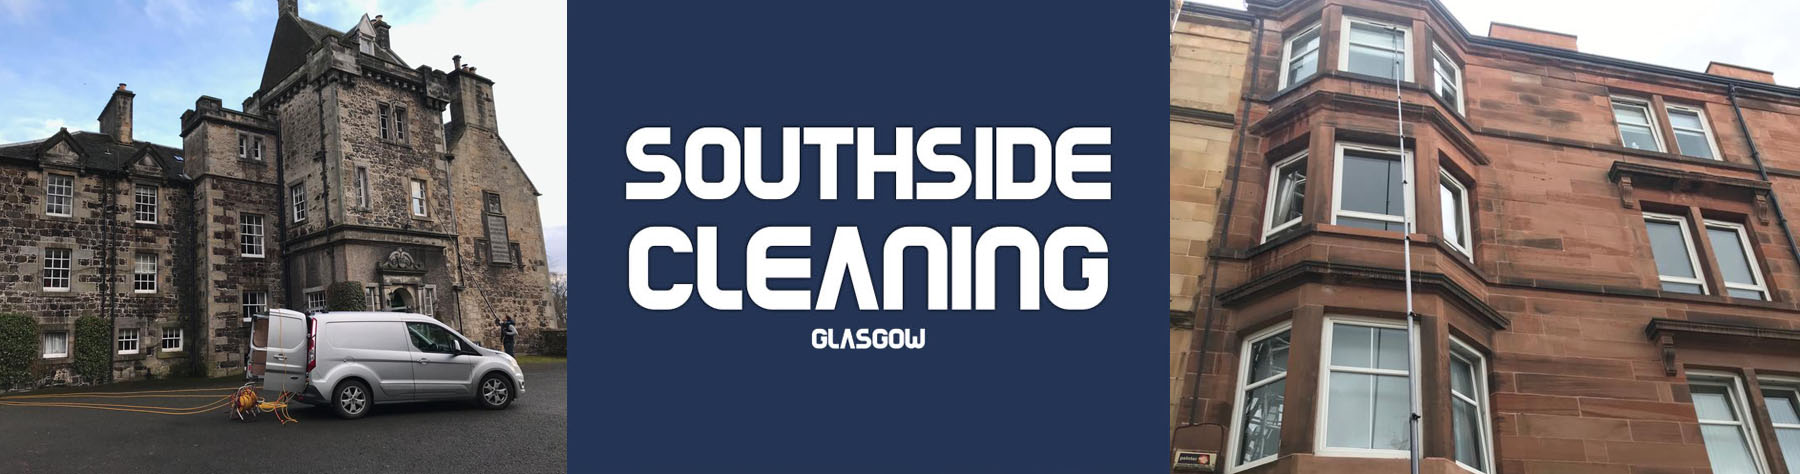 Southside Glasgow window cleaners